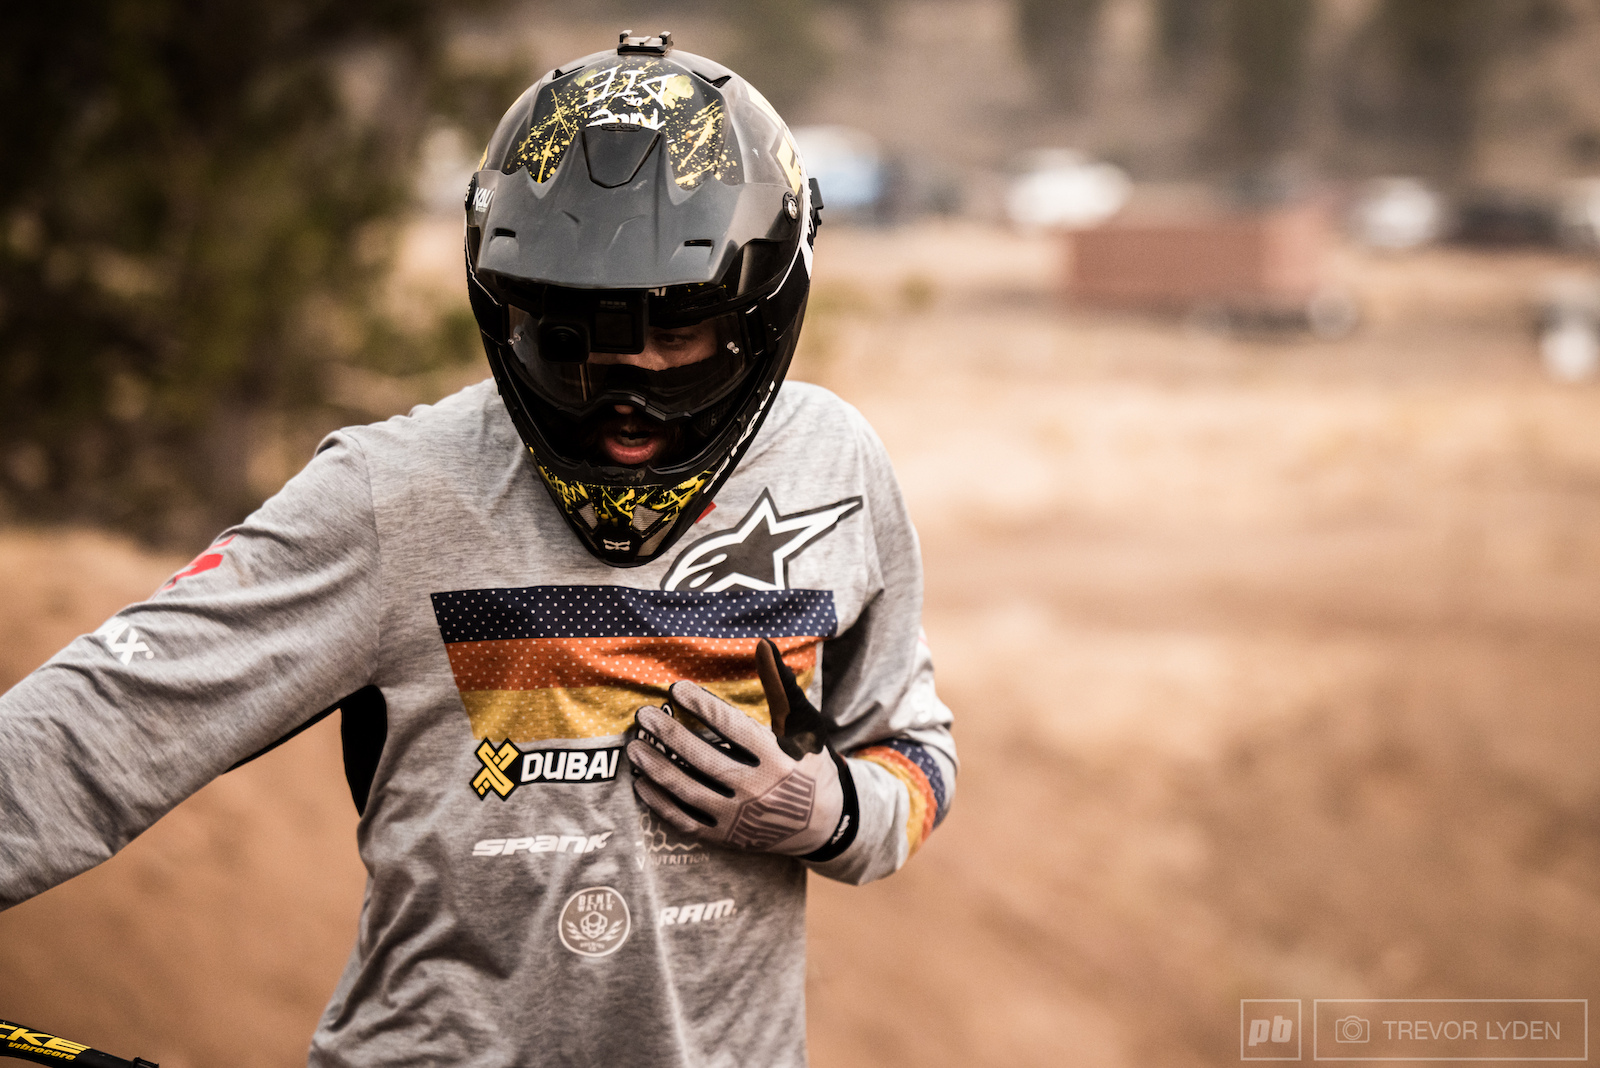 The first practice day is all about getting the feel of things sometimes that includes a few close calls.